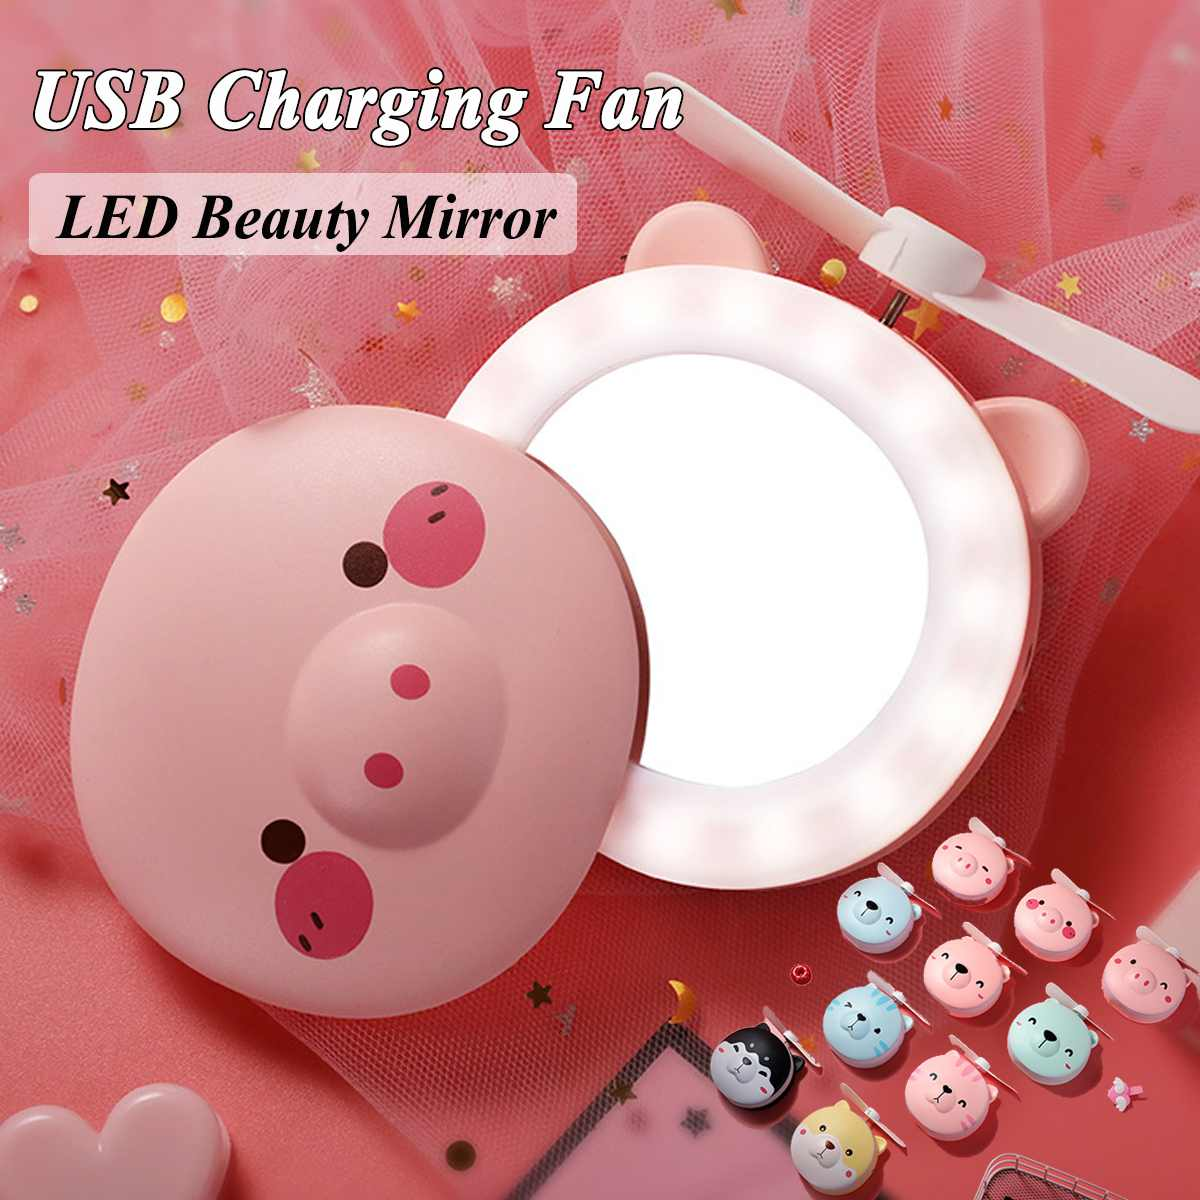 Mini LED Light Beauty Mirror Makeup Tool Portable Fan Cartoon Bear Pink Multifunction USB Rechargeable Cooling Outdoor Small Fan